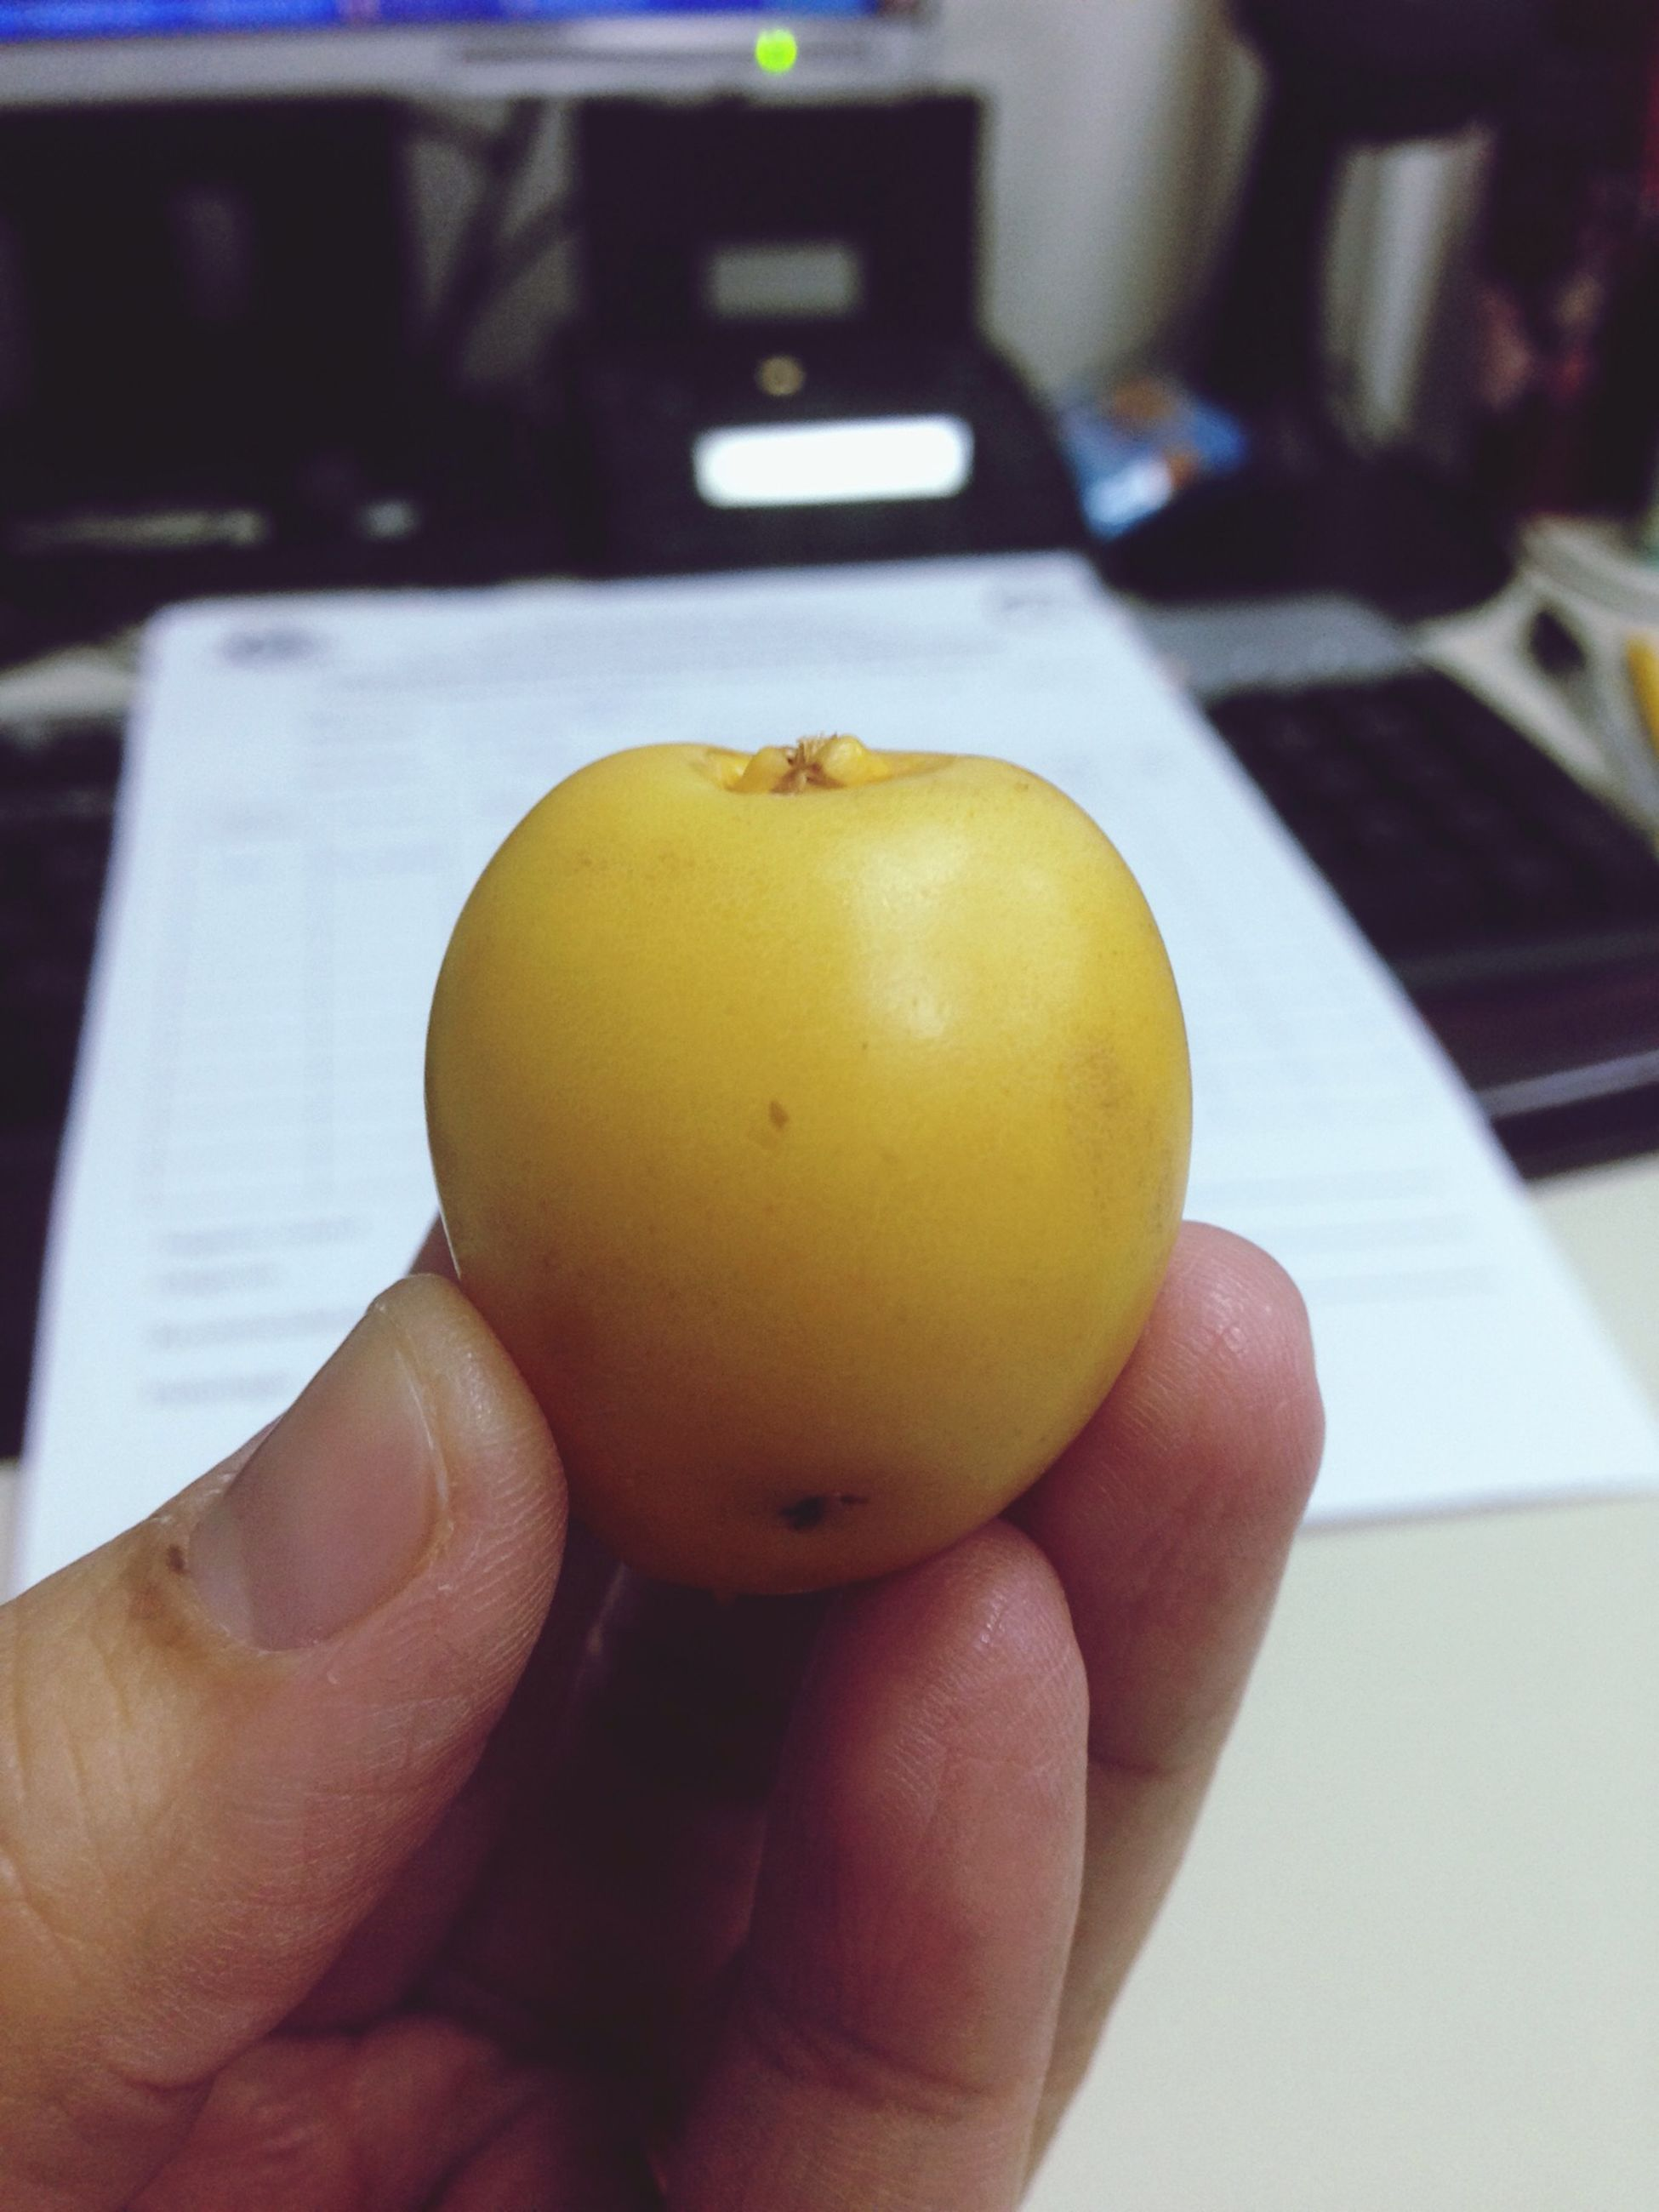 person, holding, part of, cropped, food and drink, close-up, personal perspective, human finger, food, indoors, yellow, focus on foreground, unrecognizable person, fruit, freshness, healthy eating, table